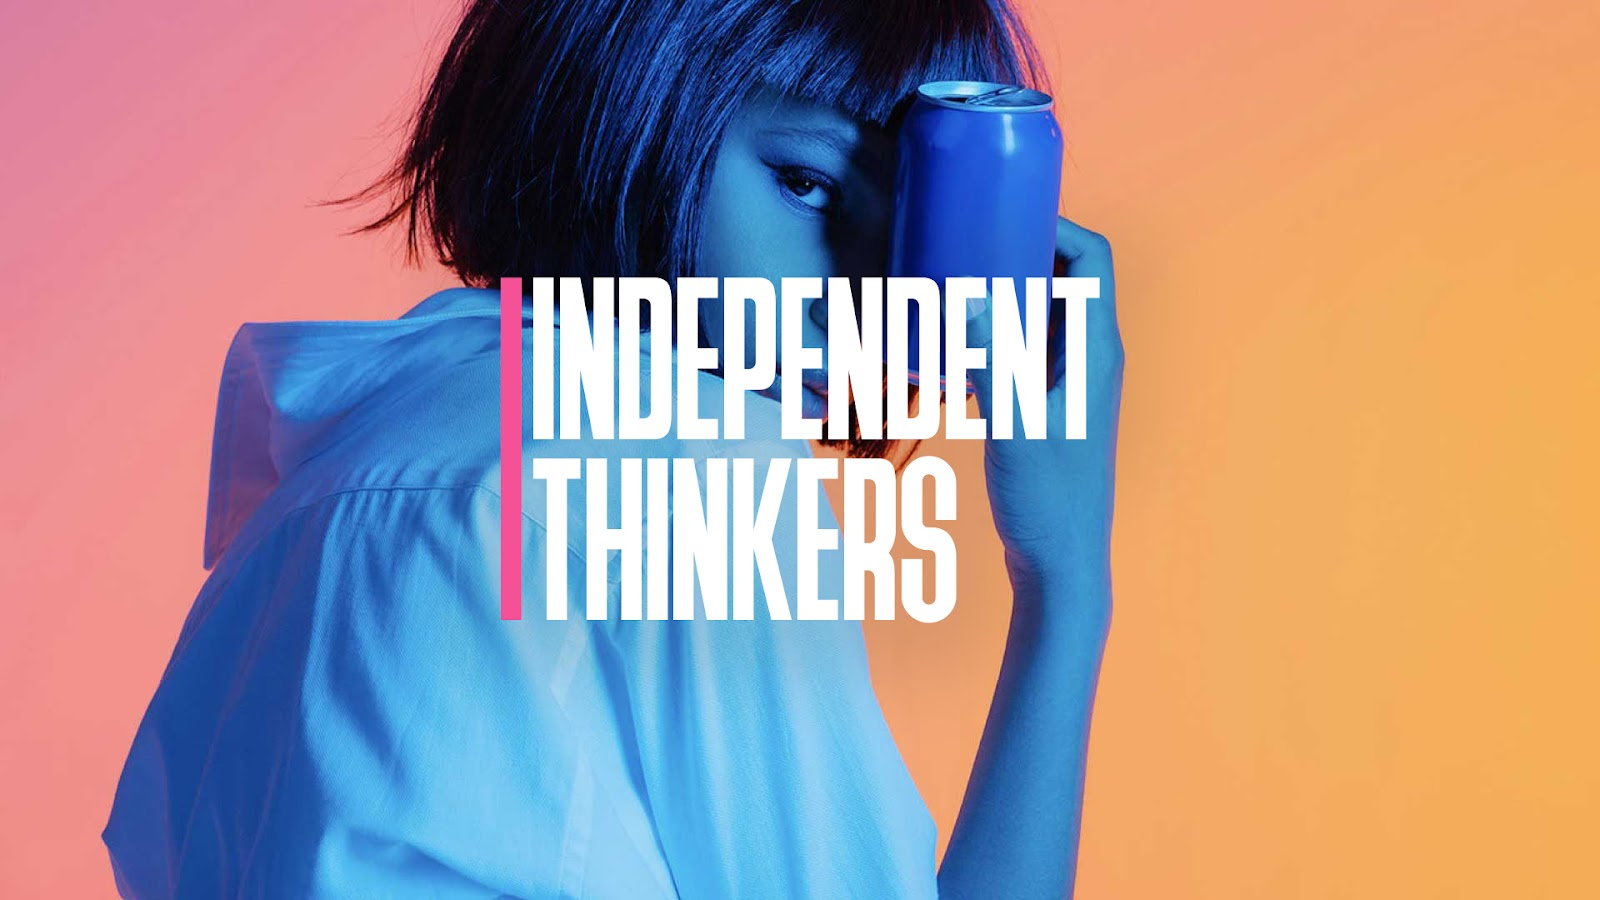 Woman Holding Can labeled Independent Thinkers